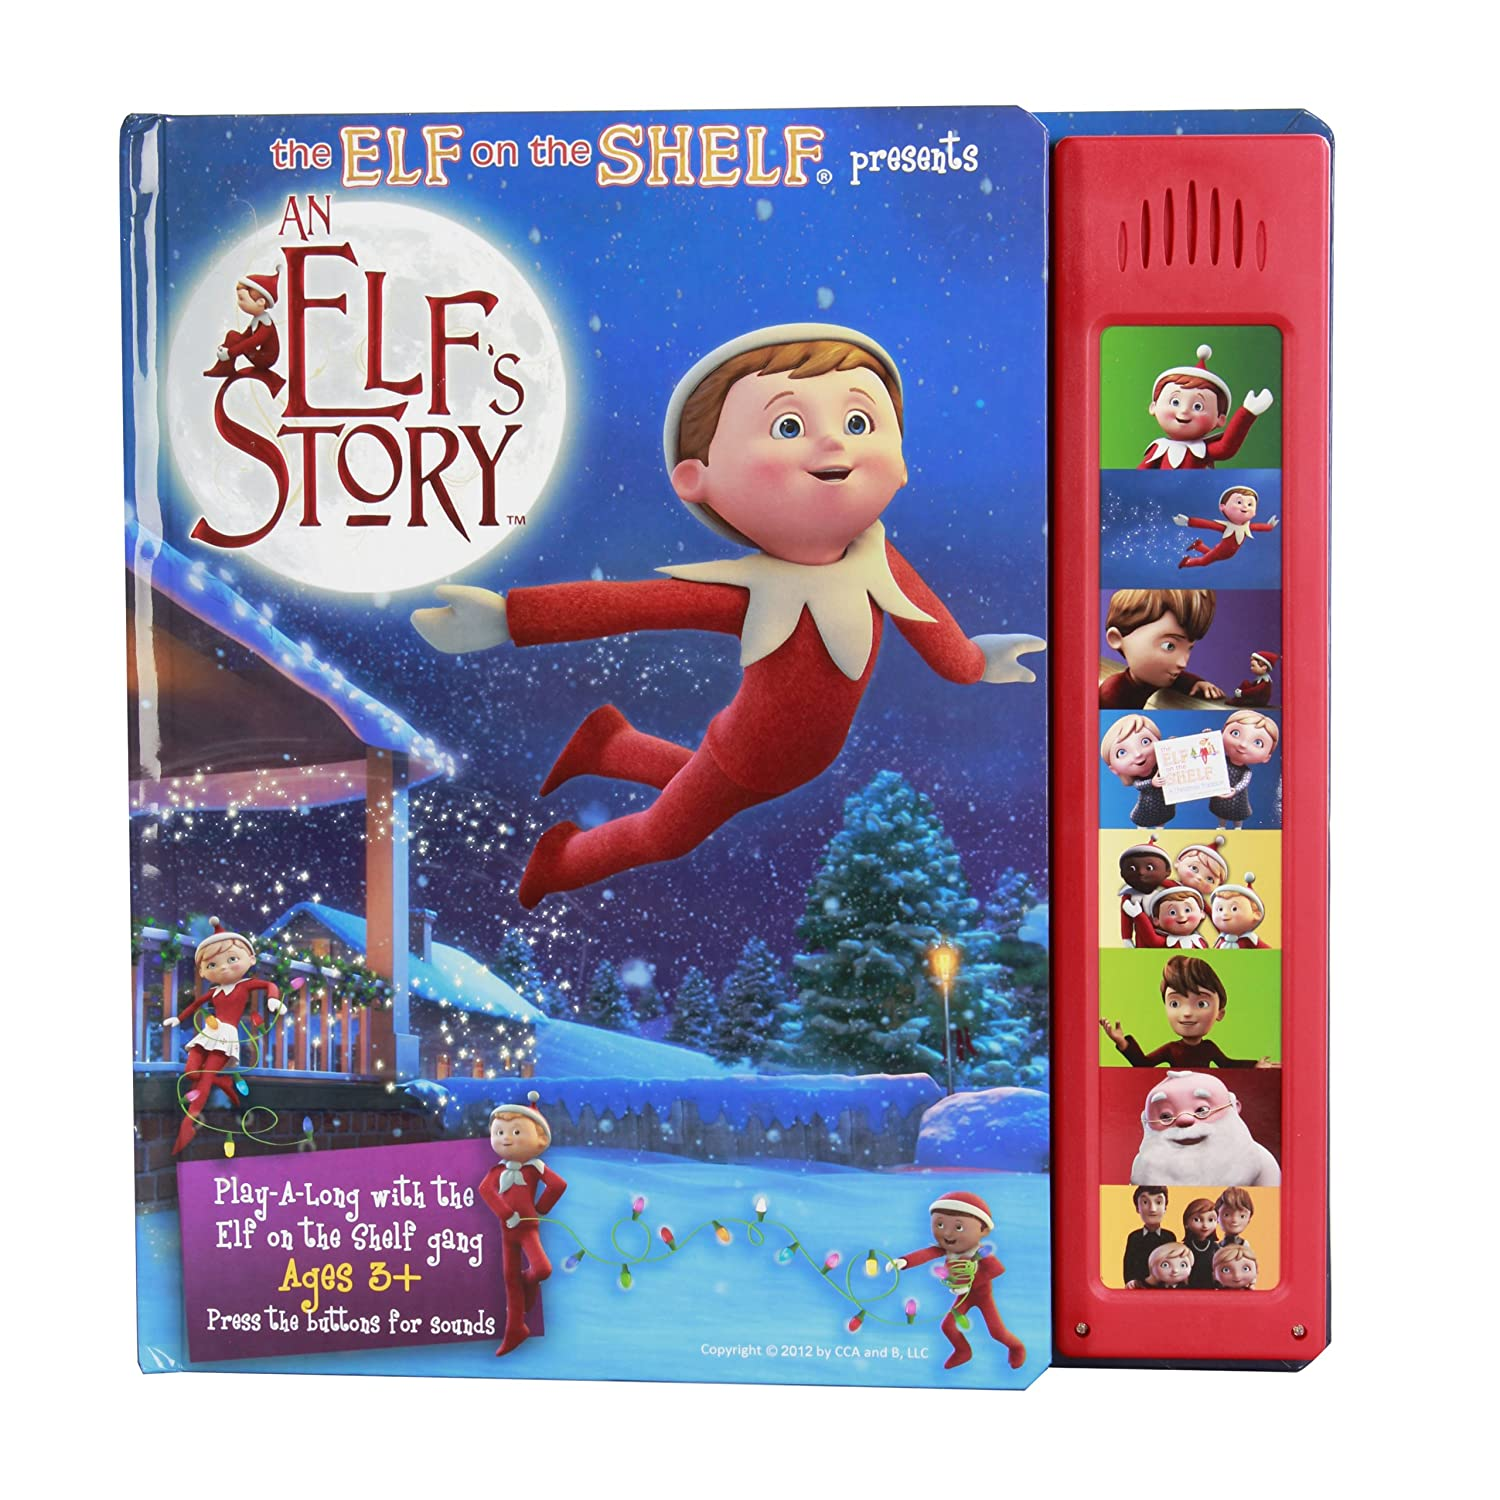 Elf on the Shelf: An Elf's Story Sound Book Great Gift